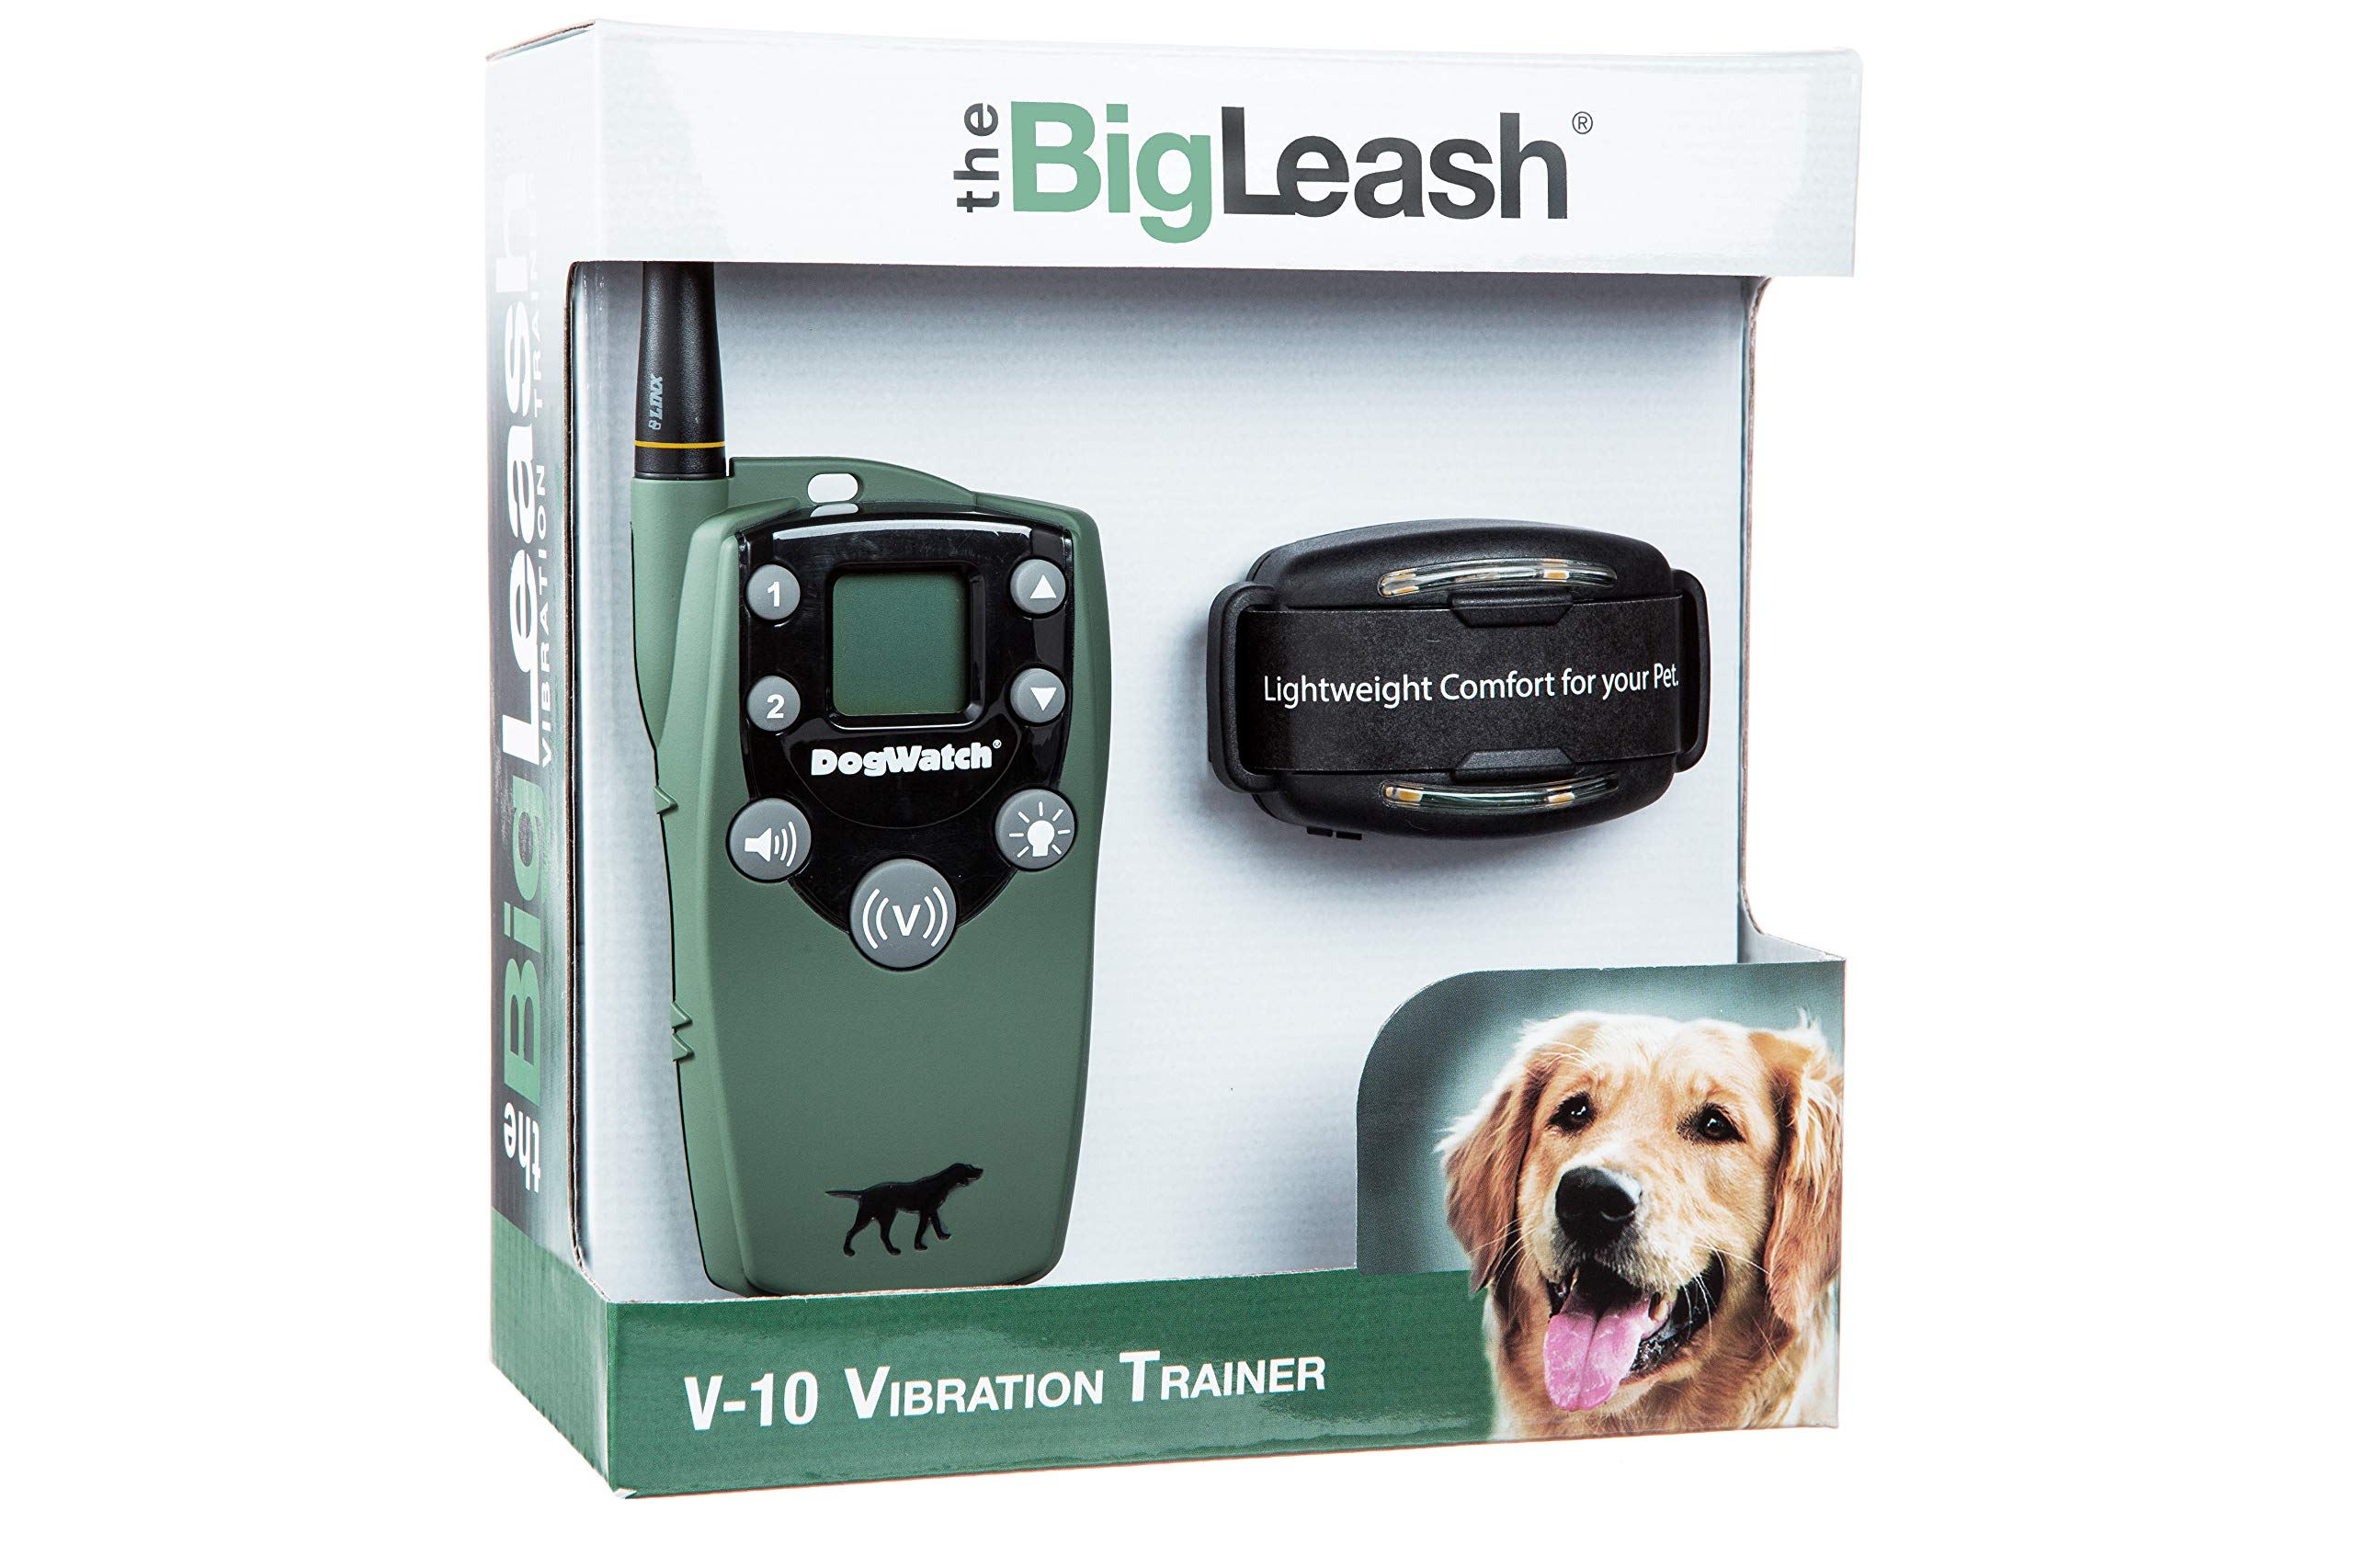 DogWatch BigLeash V-10 Vibration Dog Training Collar - Safe and Effective E-Collar with Two-Way Communication up to ½ Mile, 10 Adjustable Vibration Levels Plus an Audible Signal, Waterproof, Recharge by DogWatch